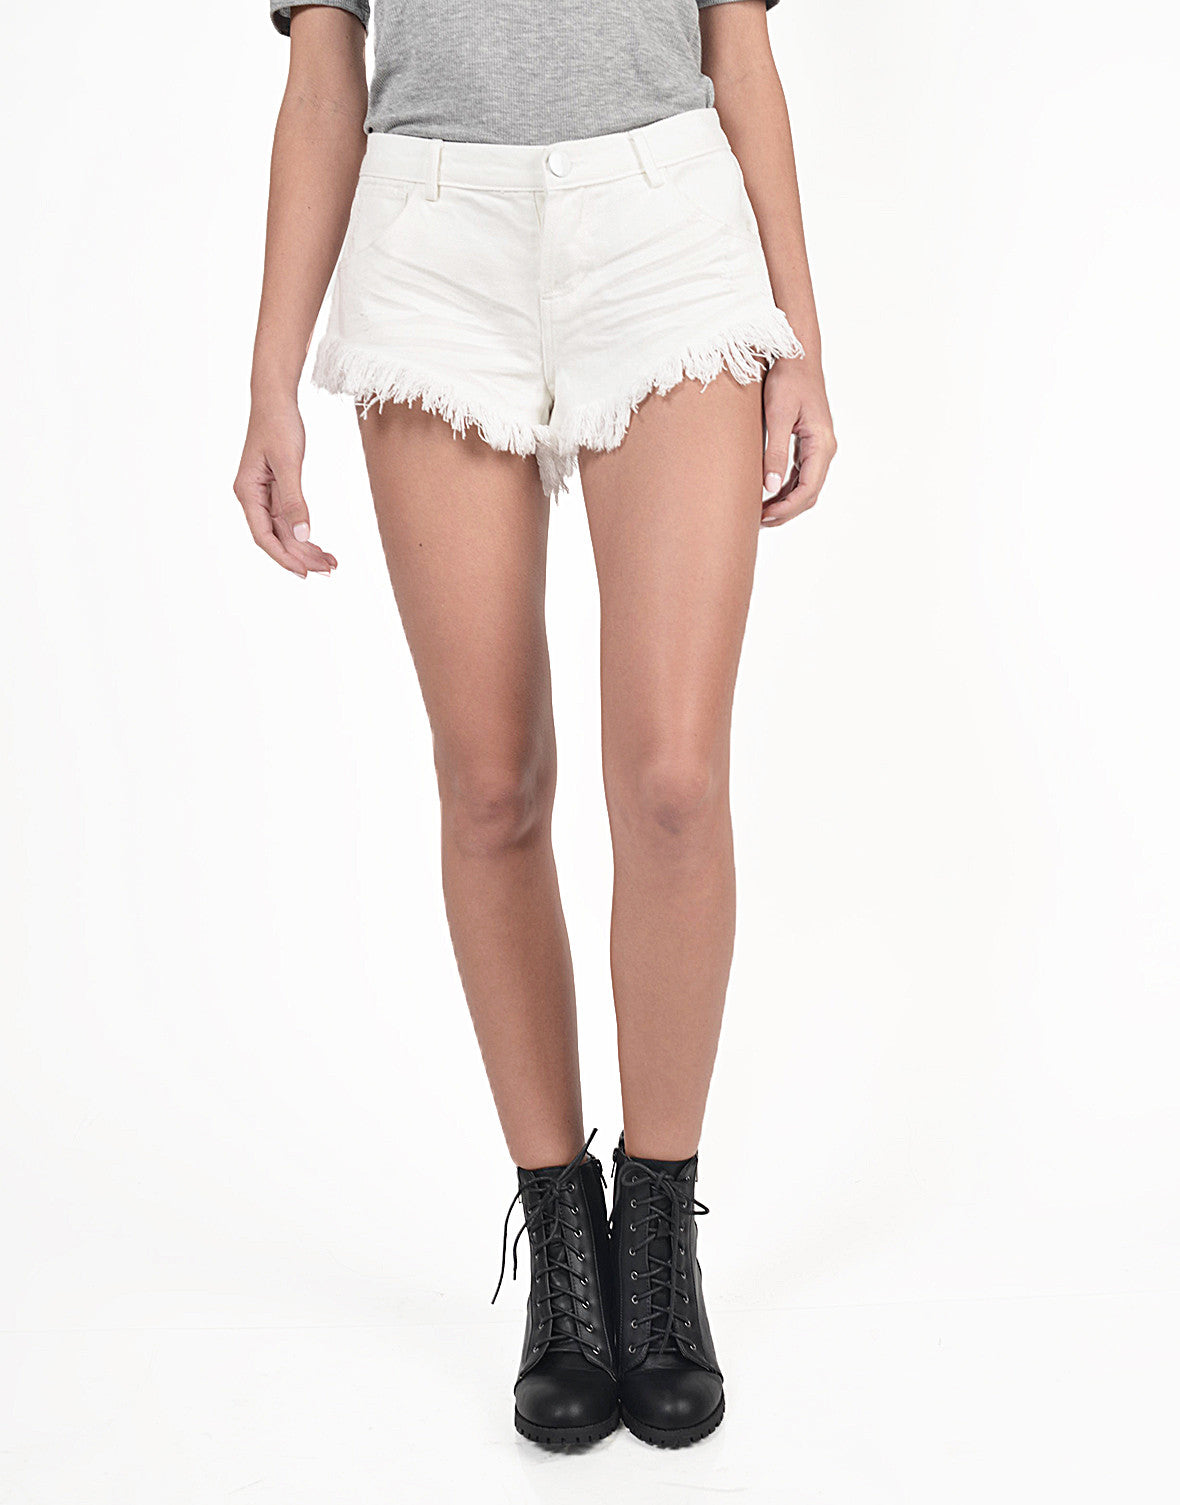 Cheeky Frayed Denim Shorts